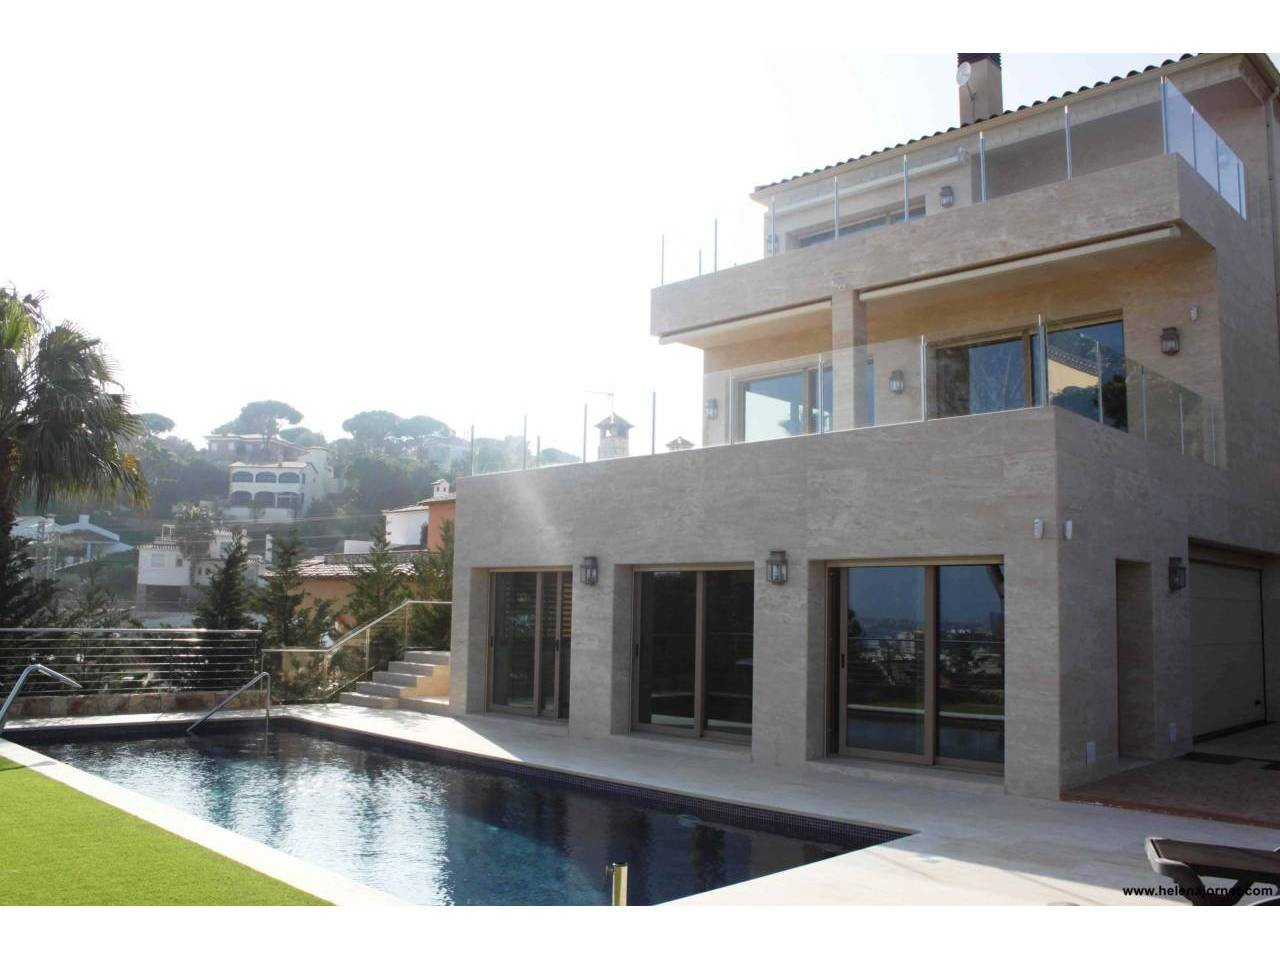 Wonderful luxury house with outdoor and indoor swimming pools and two large terraces with views - 372